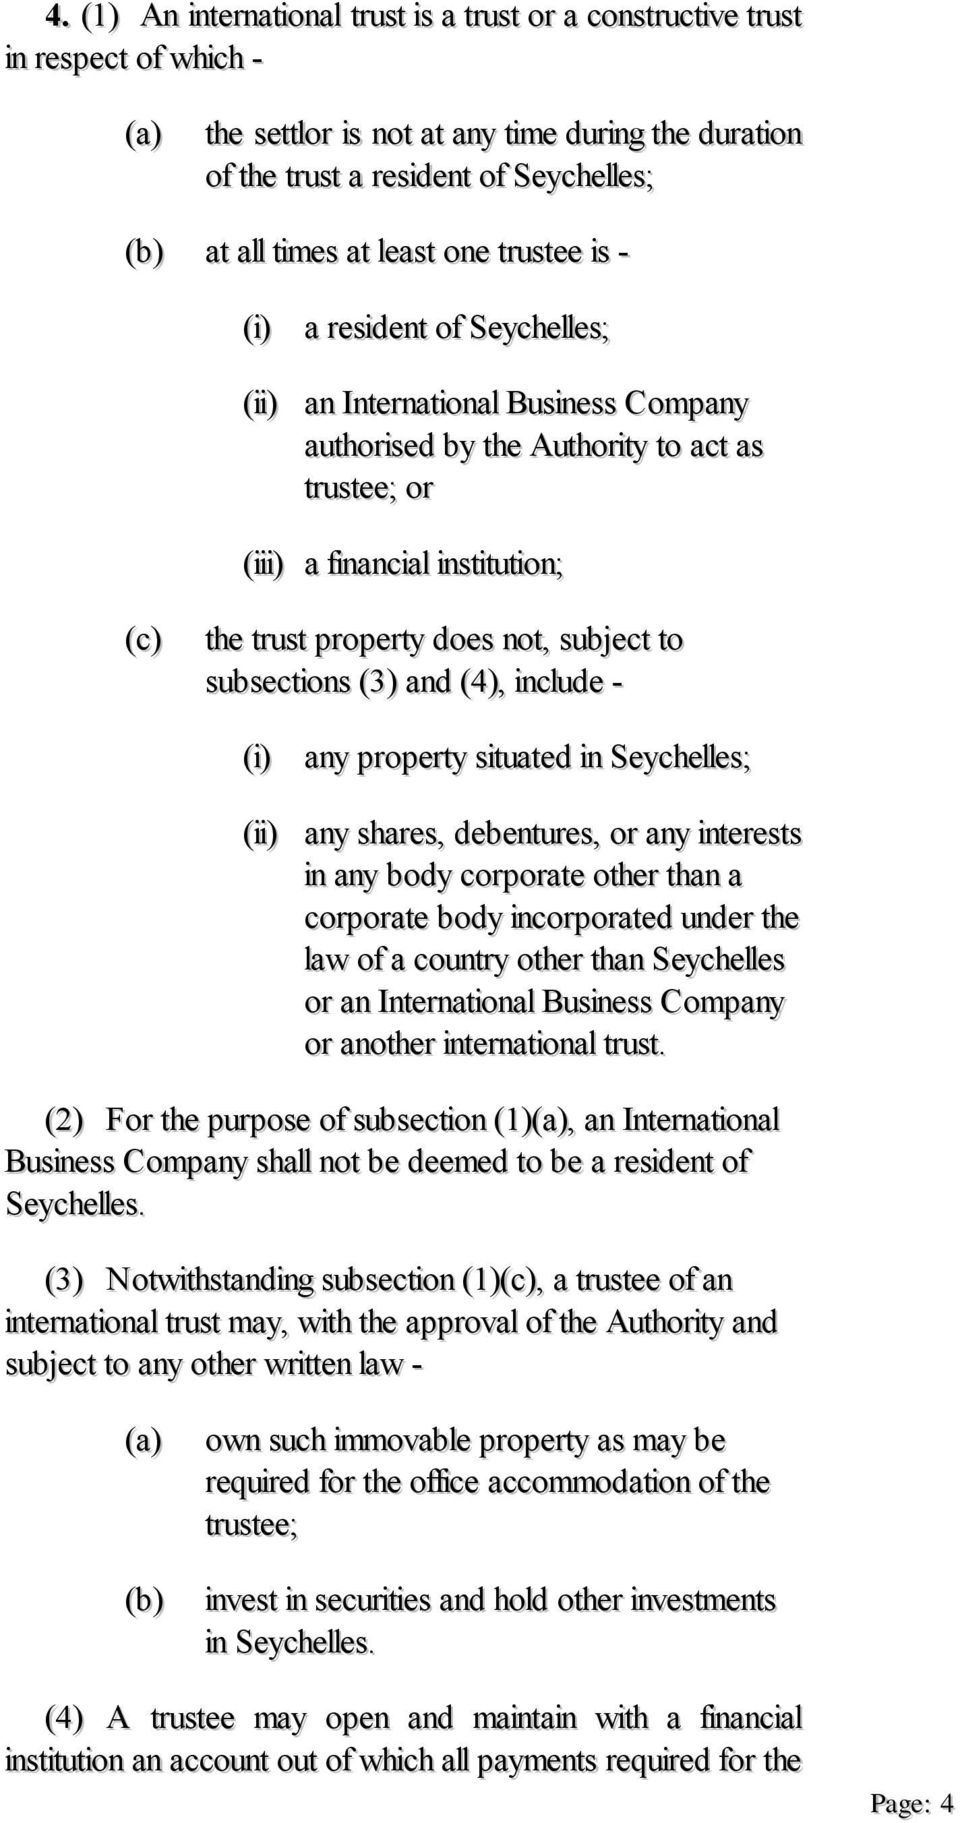 trustee is - (i) a resident of Seychelles; (ii) an International Business Company authorised by the Authority to act as trustee; or (iii) a financial institution; the trust property does not, subject